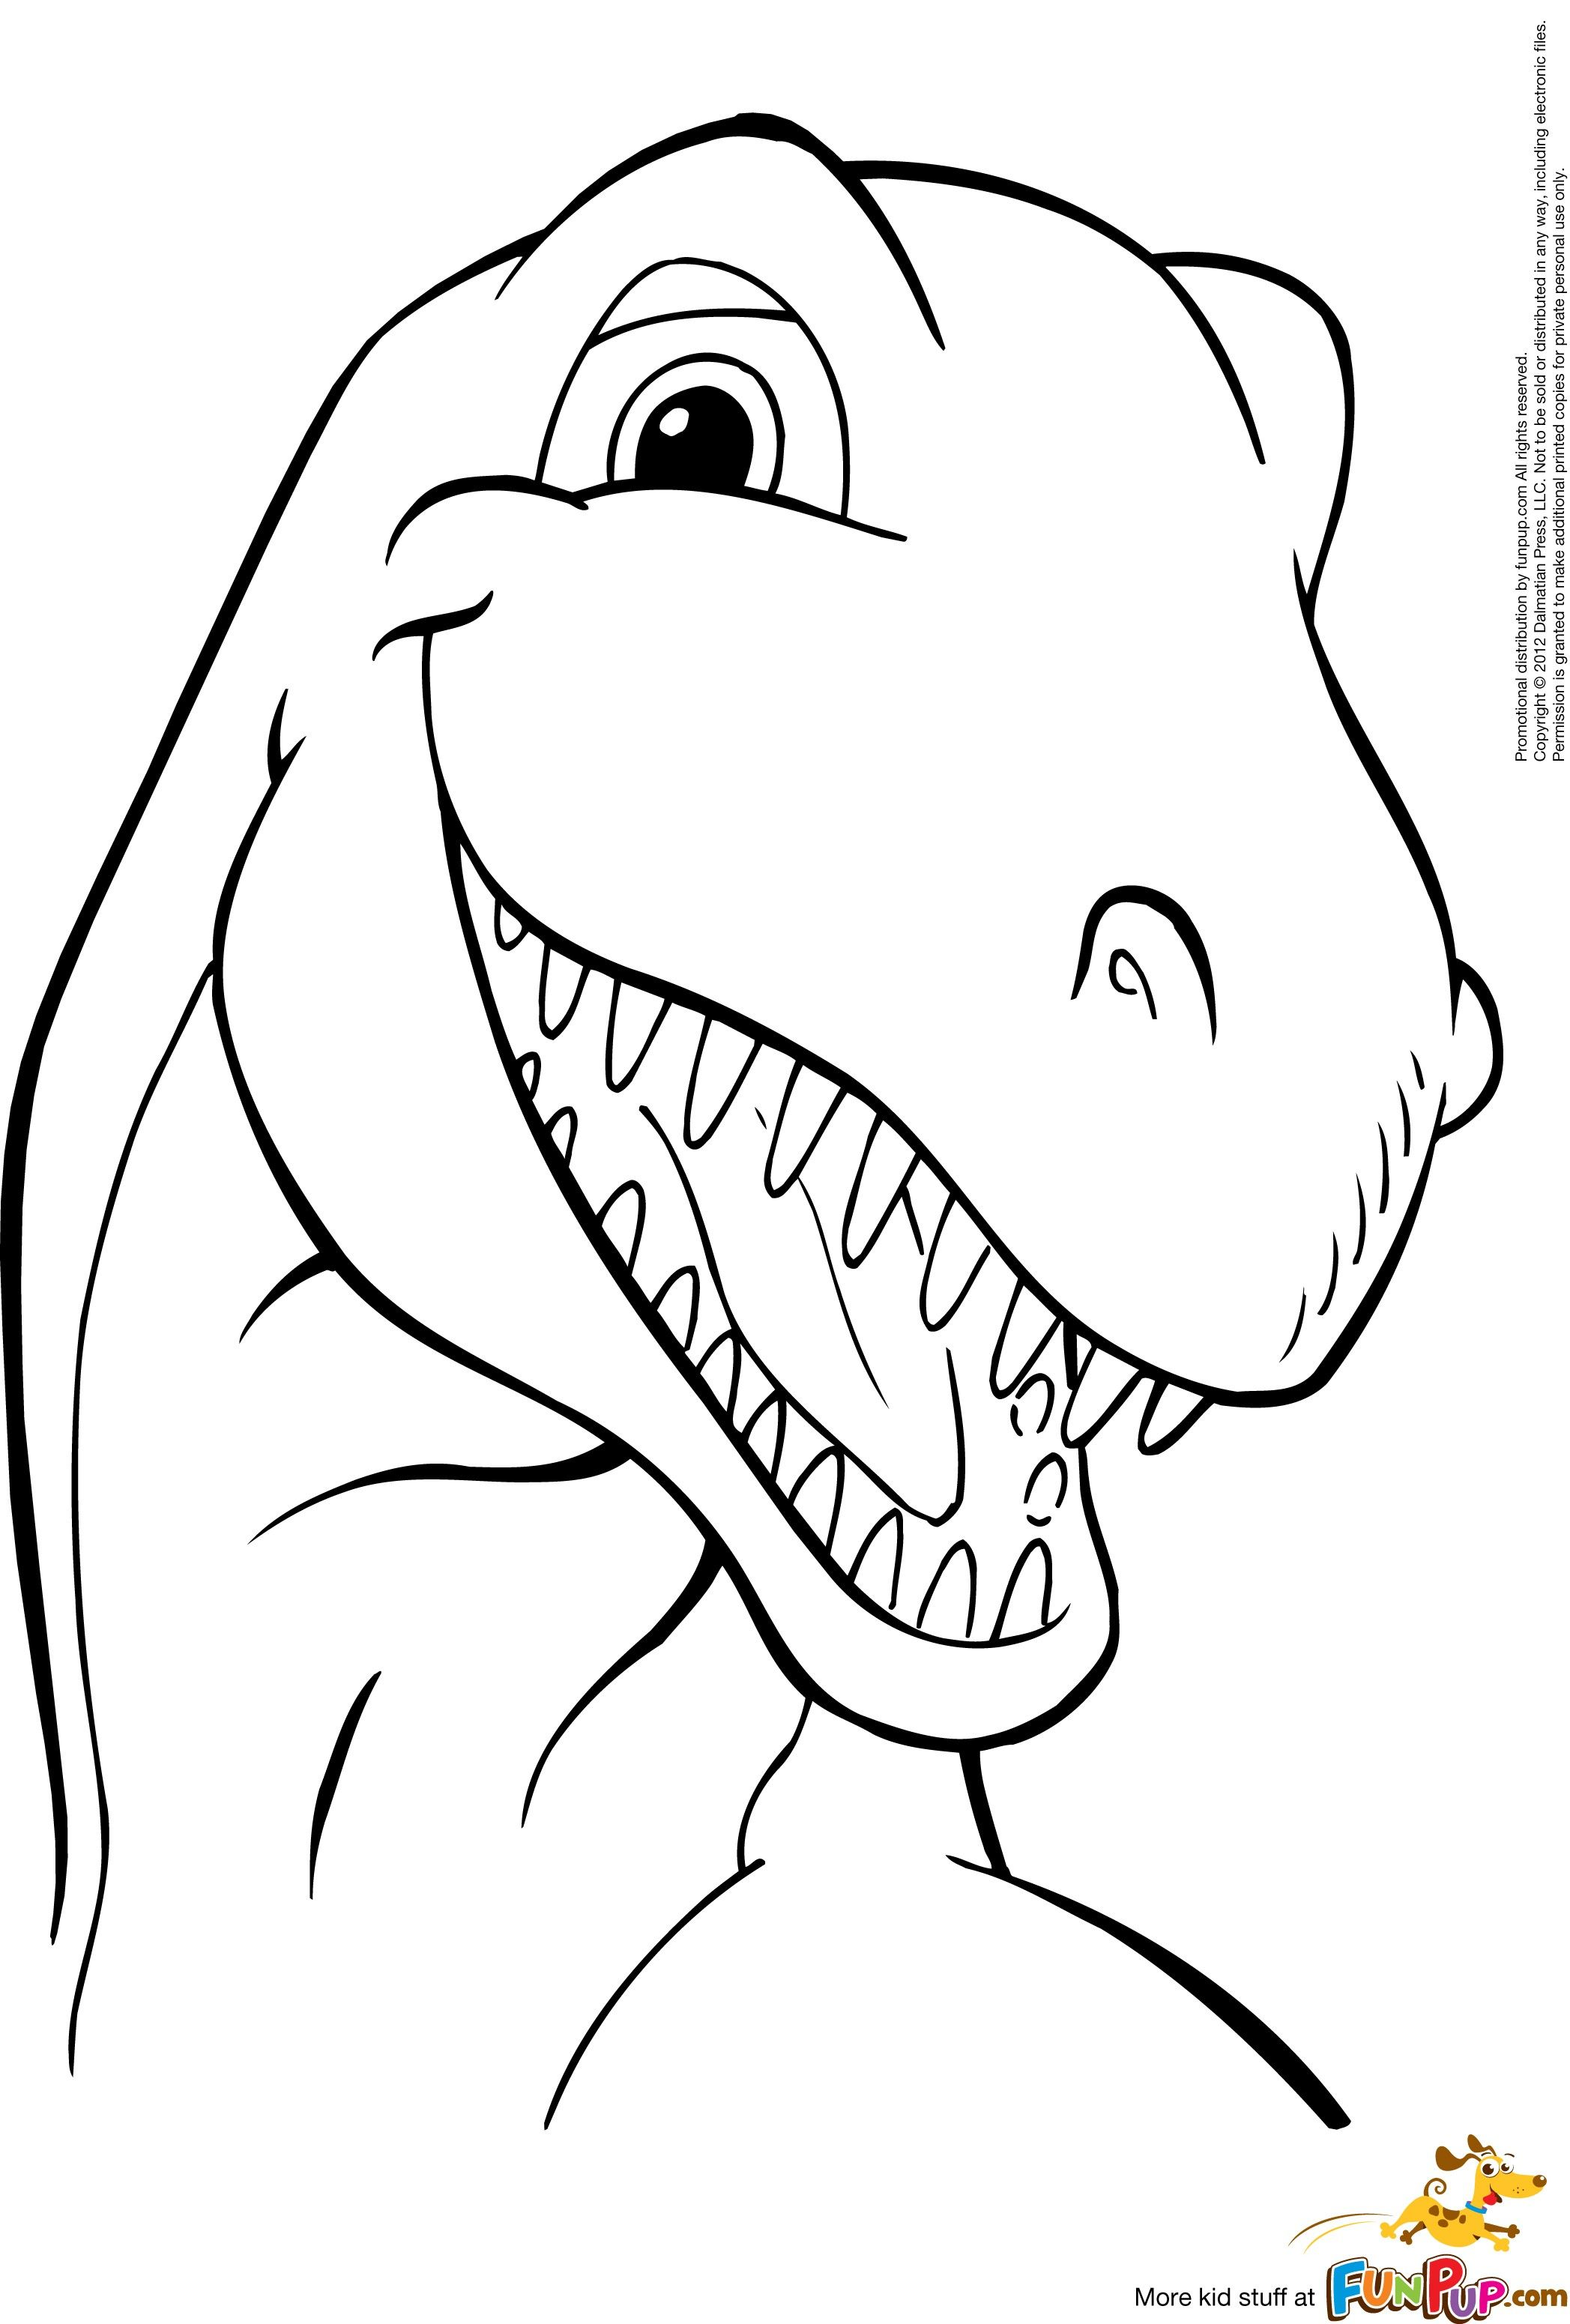 dinosaur coloring pictures for kidstaiwanhydrogen org free to